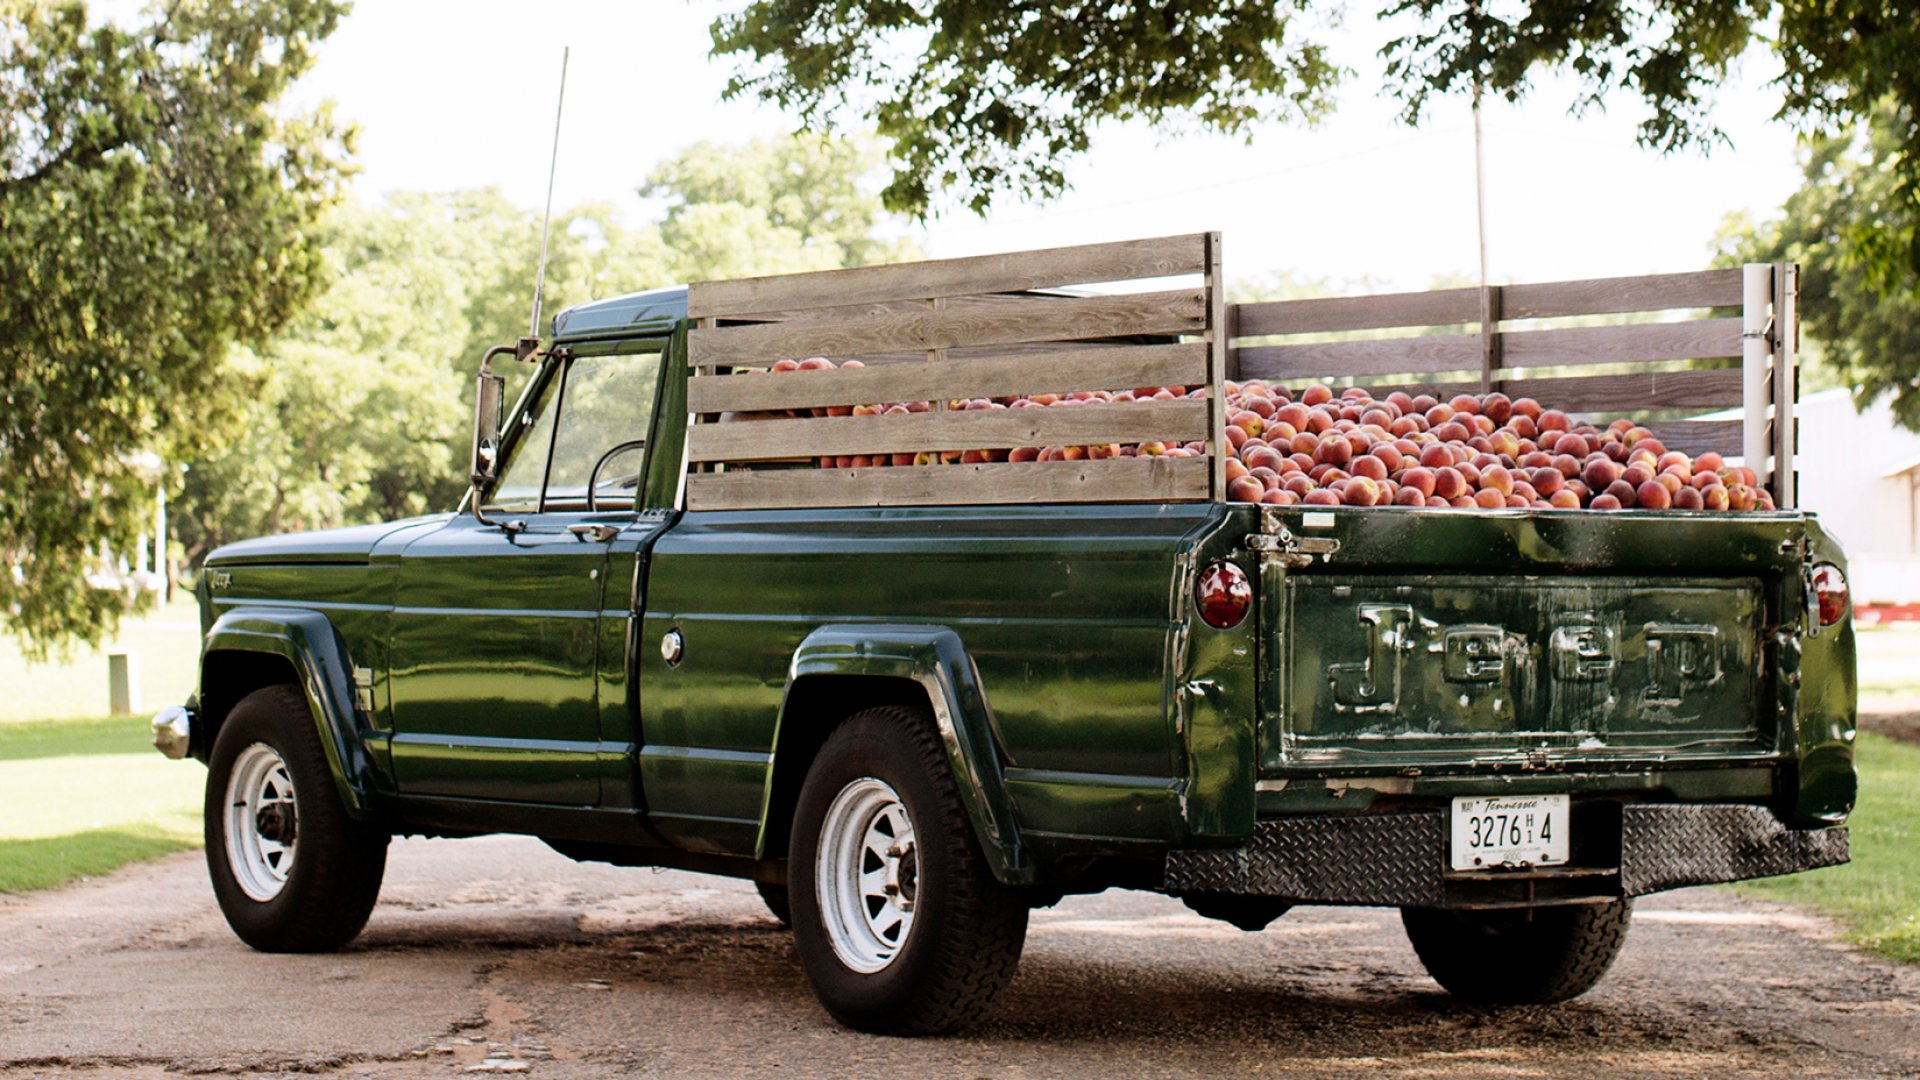 This Fruit Company Sells Out Each Summer in 12 Crazy Weeks. Inside the Logistical Madness of The Peach Truck